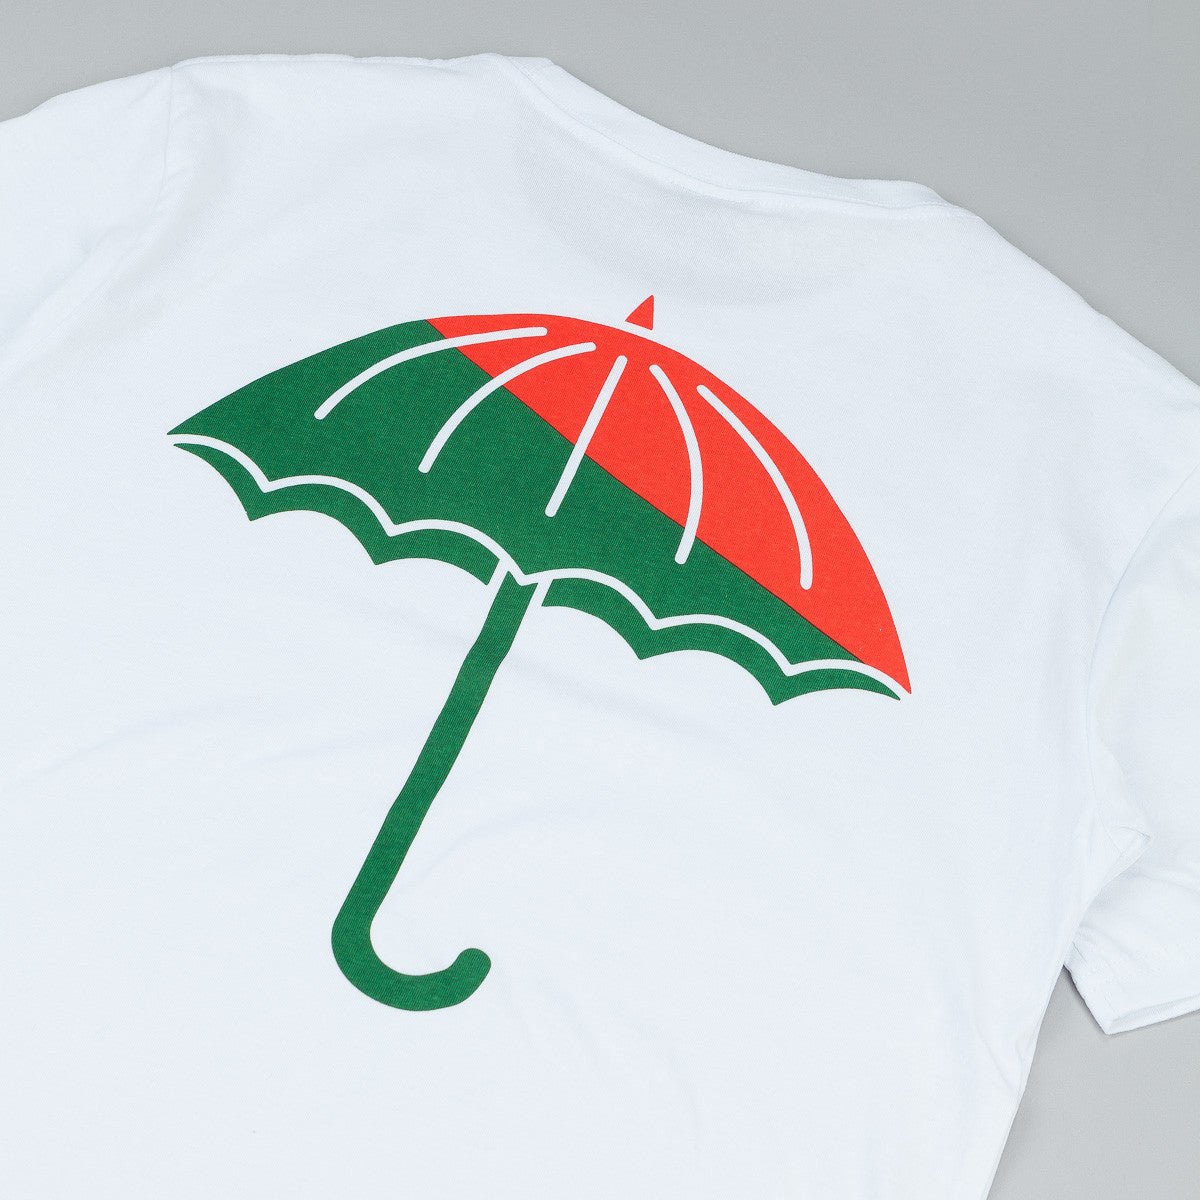 Helas Umbrella T-Shirt White / Green - Red